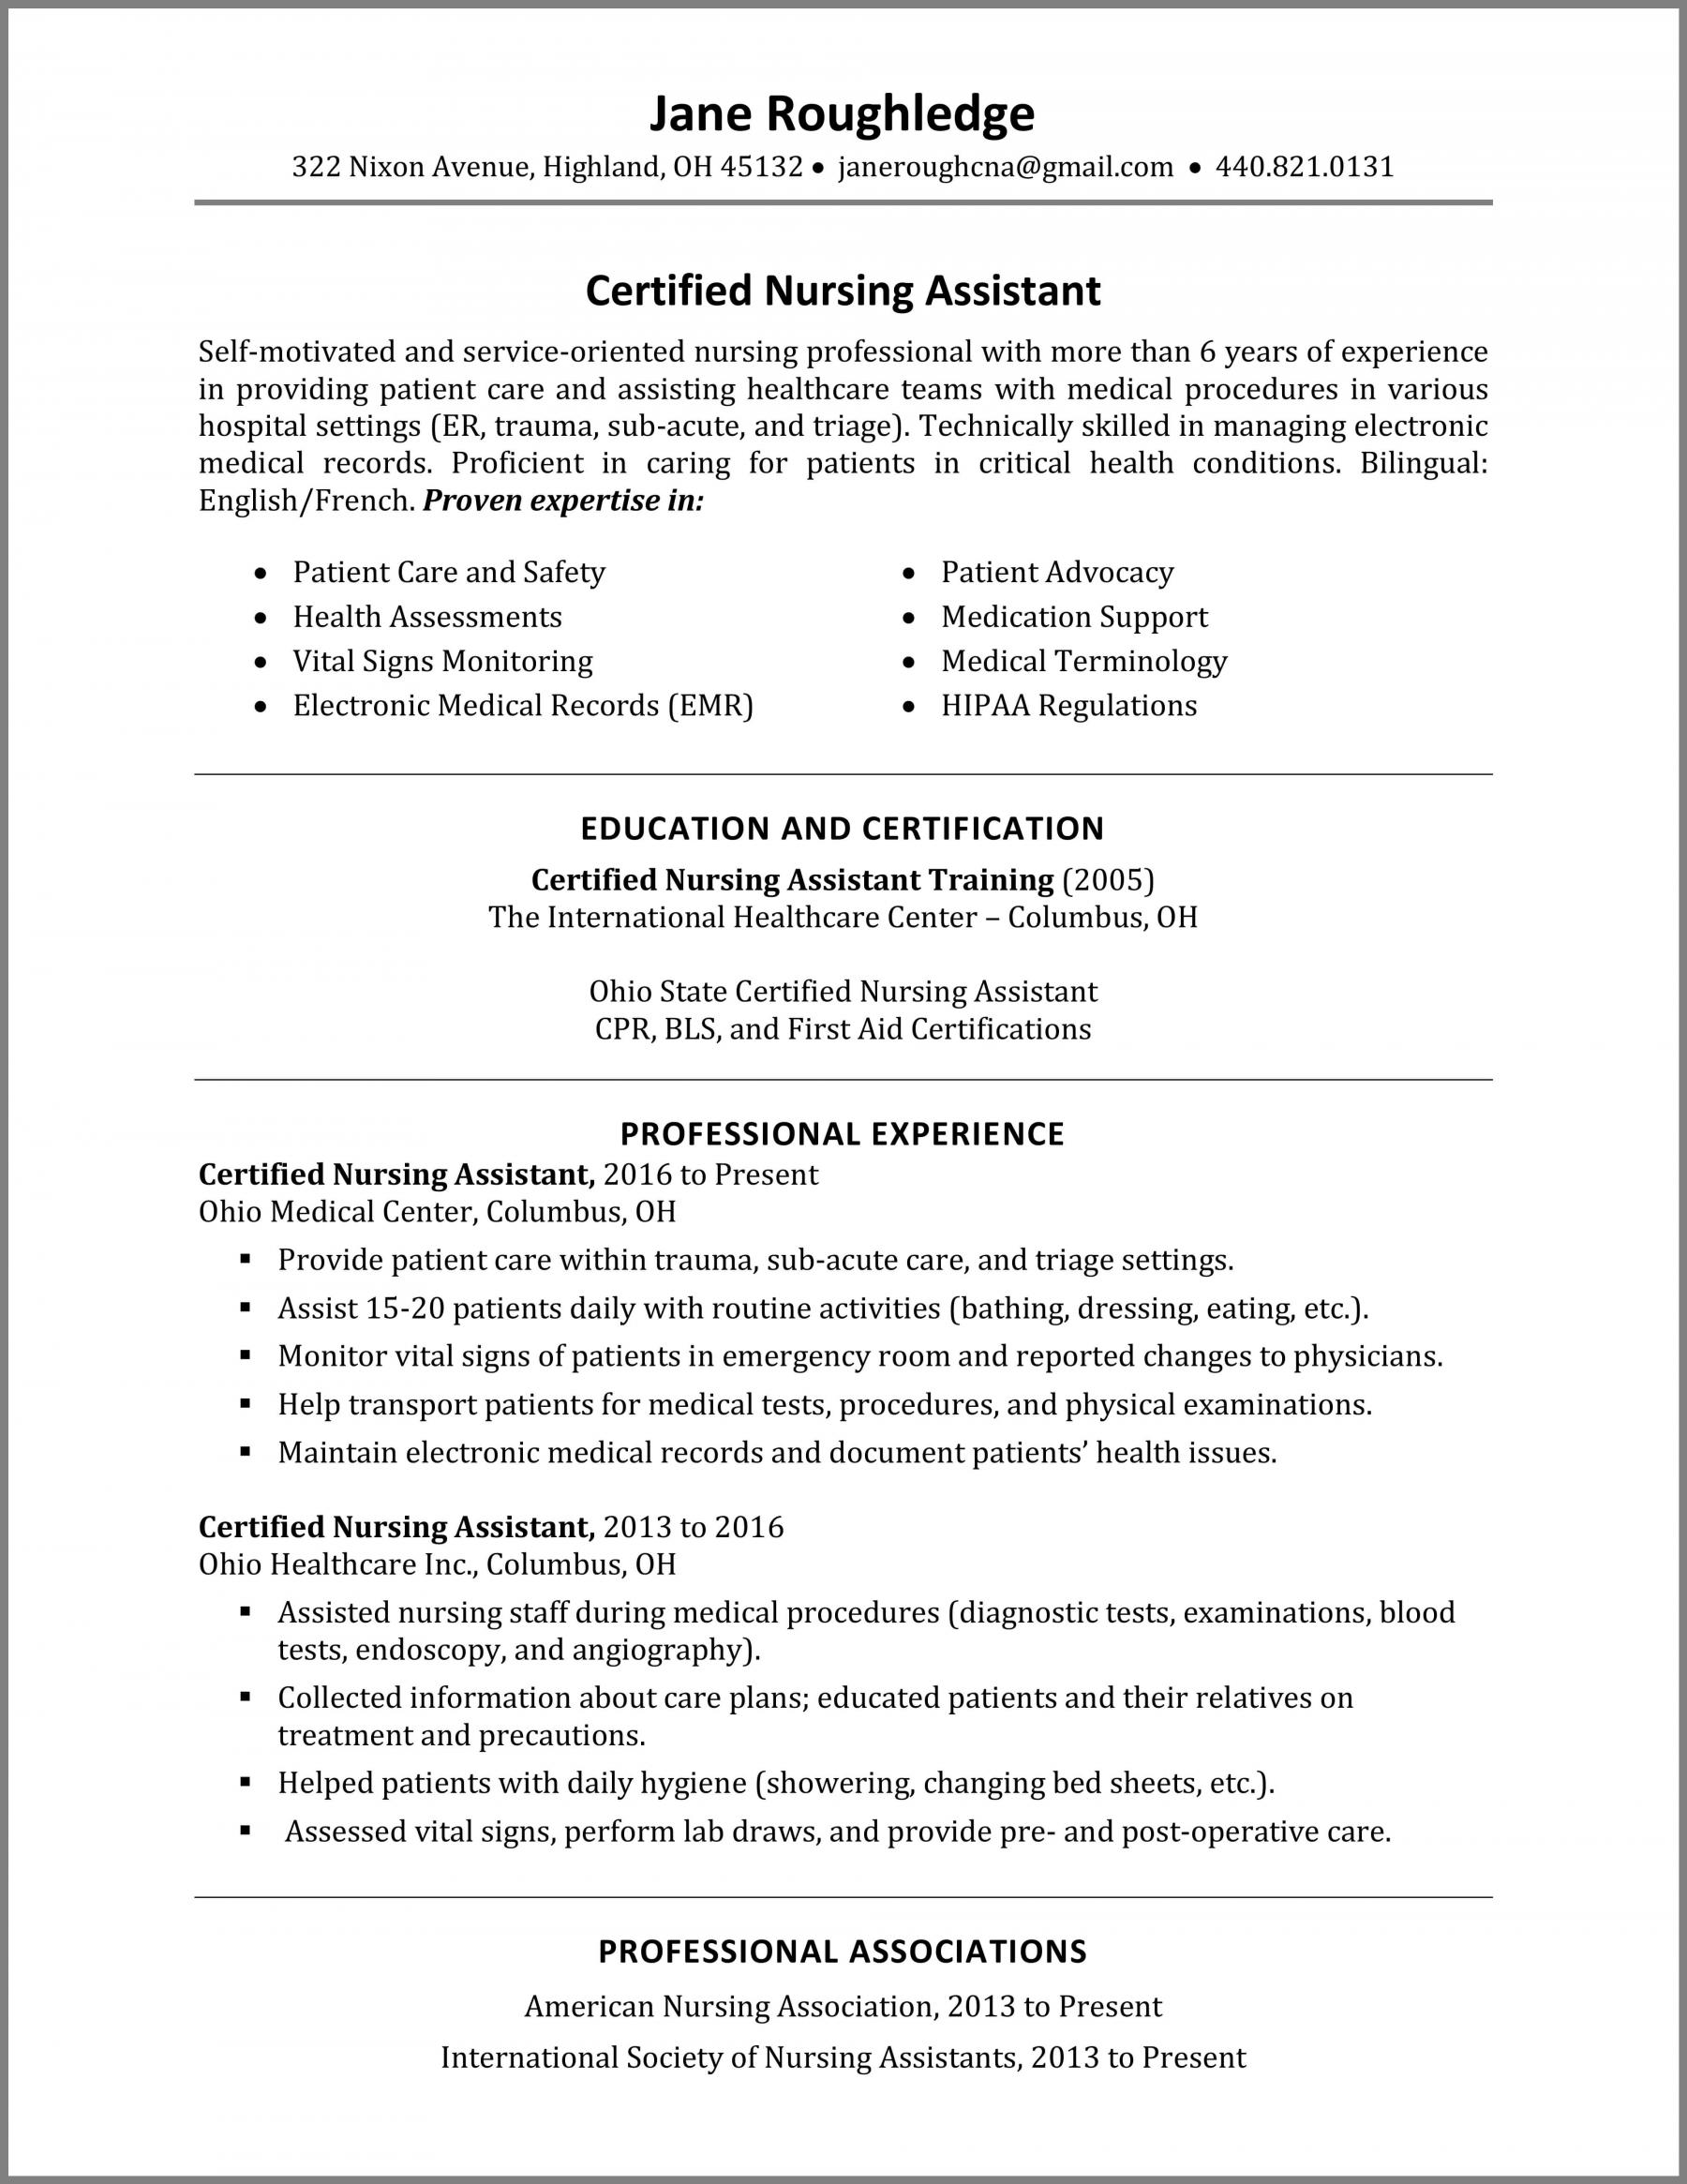 cna resume nursing assistant duties for x5rx7sgwpiwc7jikbk1v personal statement examples Resume Nursing Assistant Duties For Resume